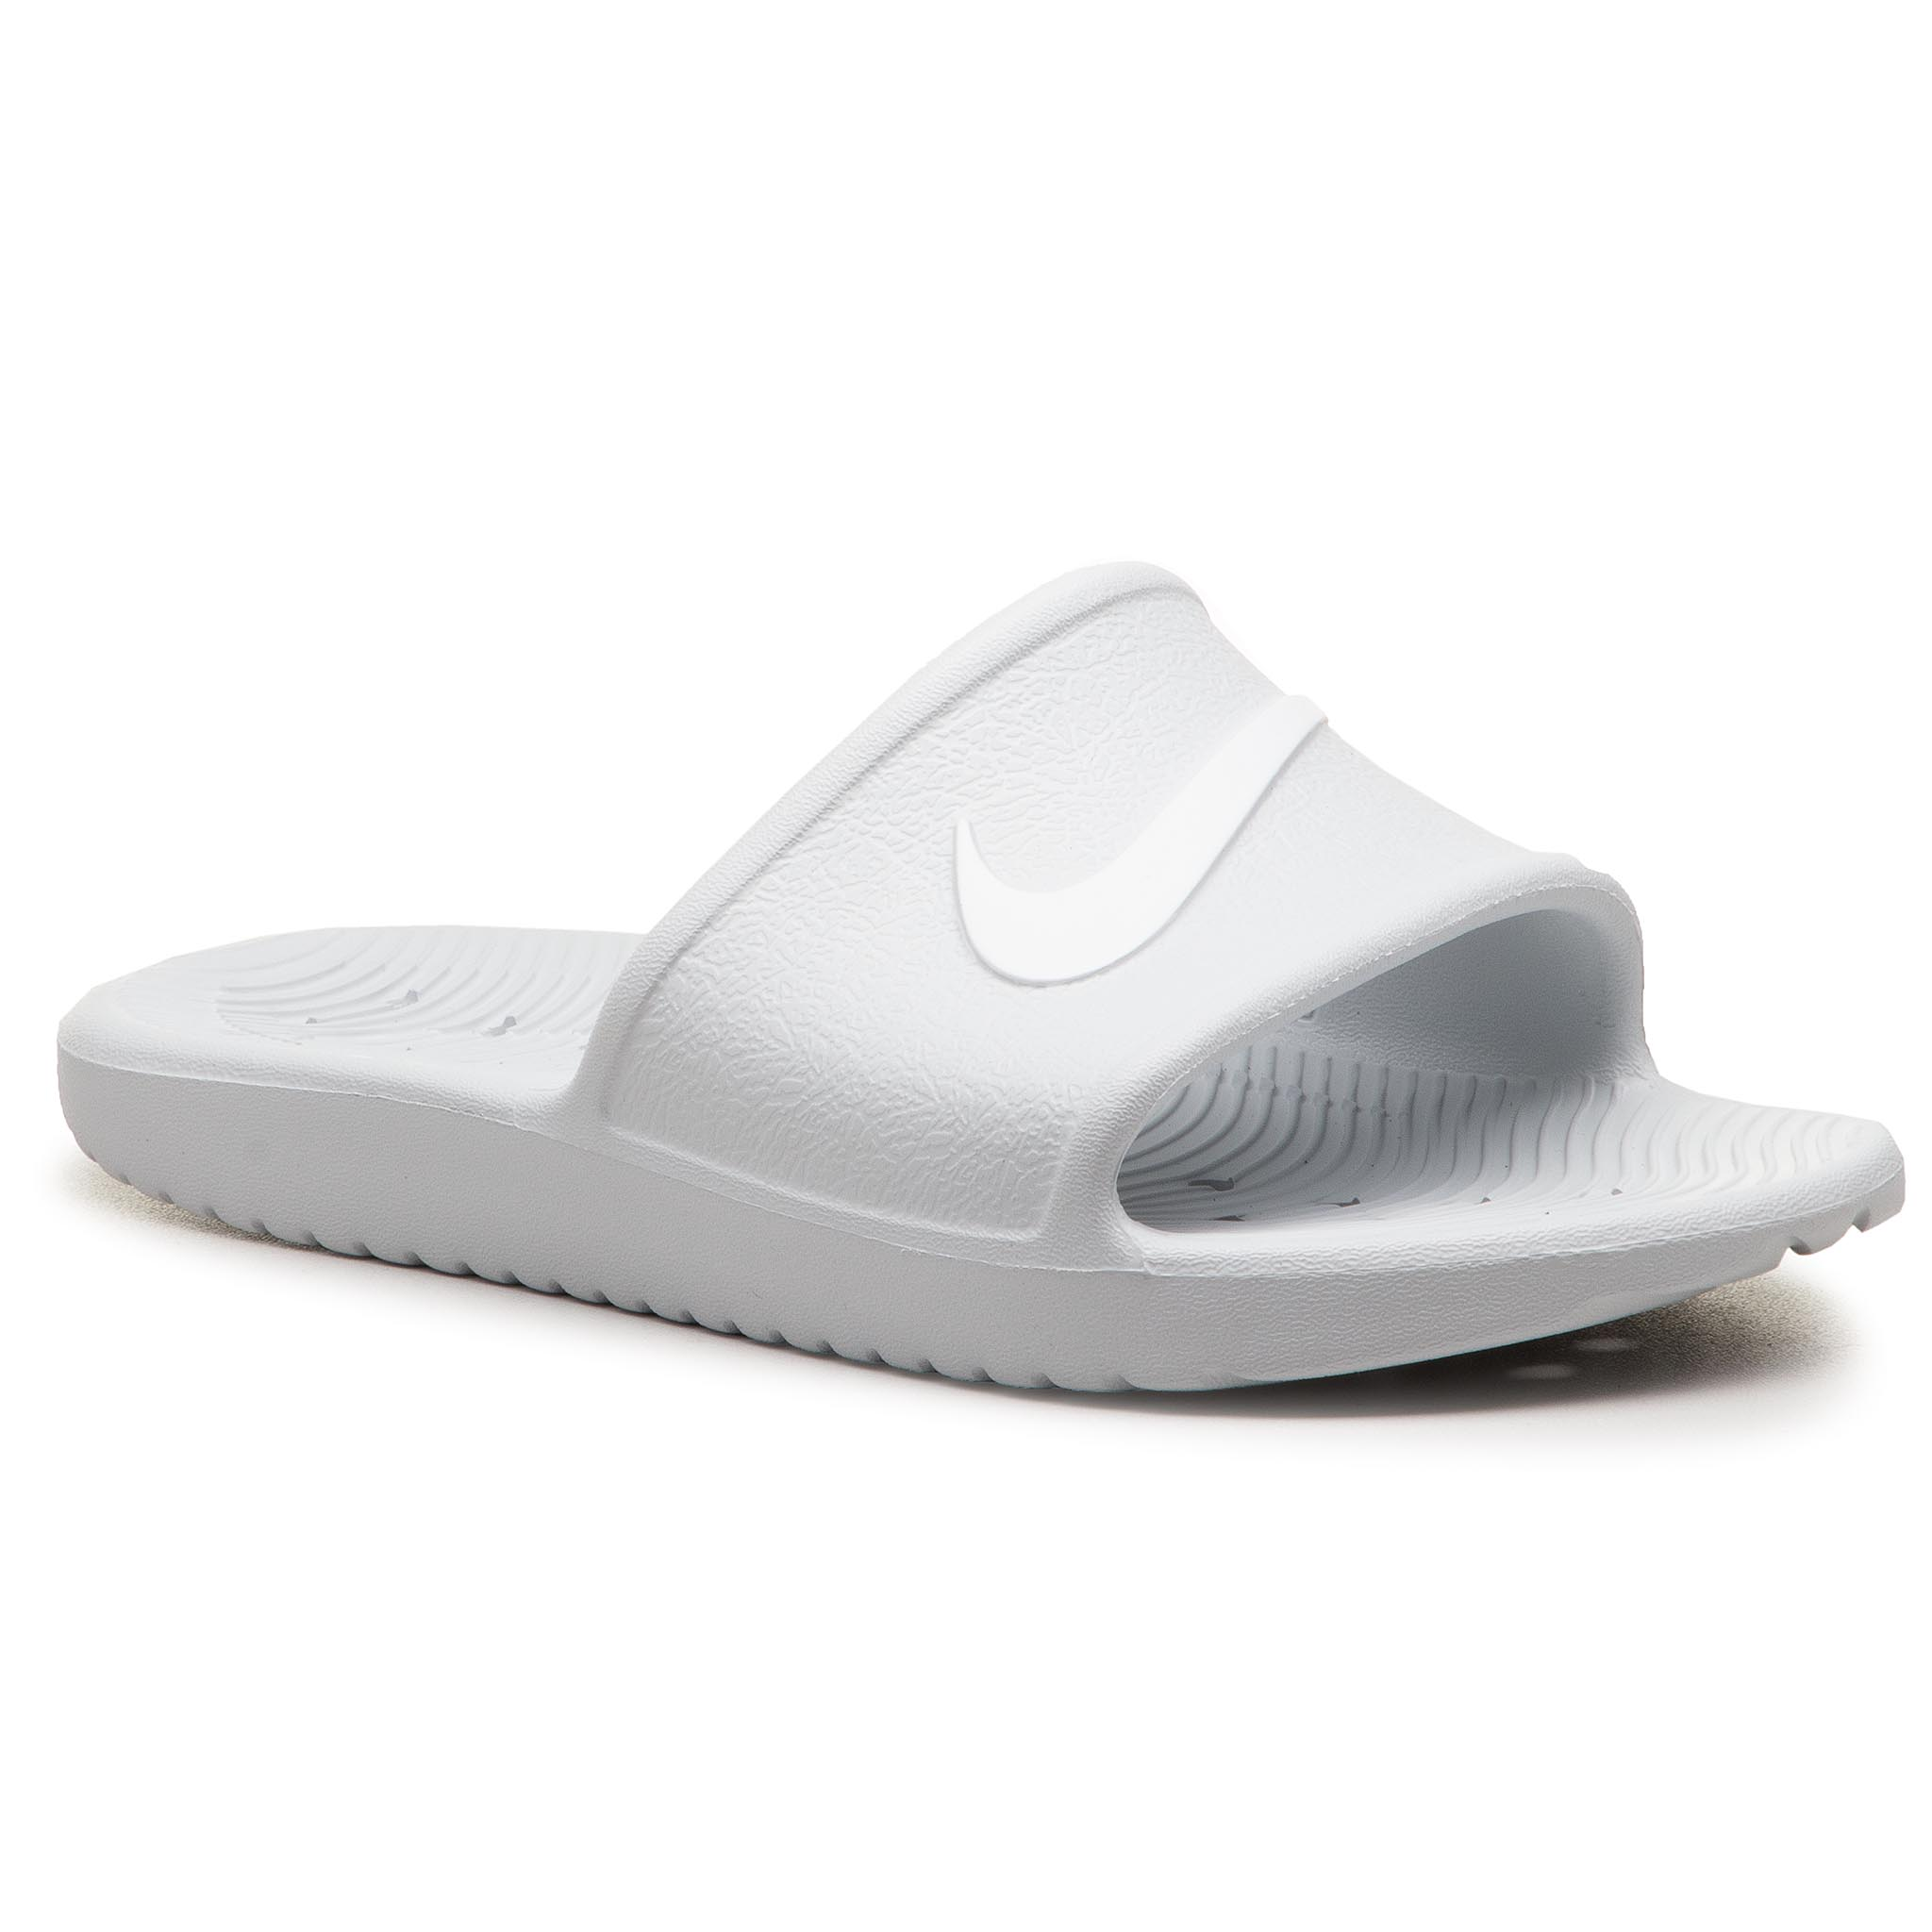 Șlapi NIKE - Kawa Shower 832655 010 Pure Platinum/White